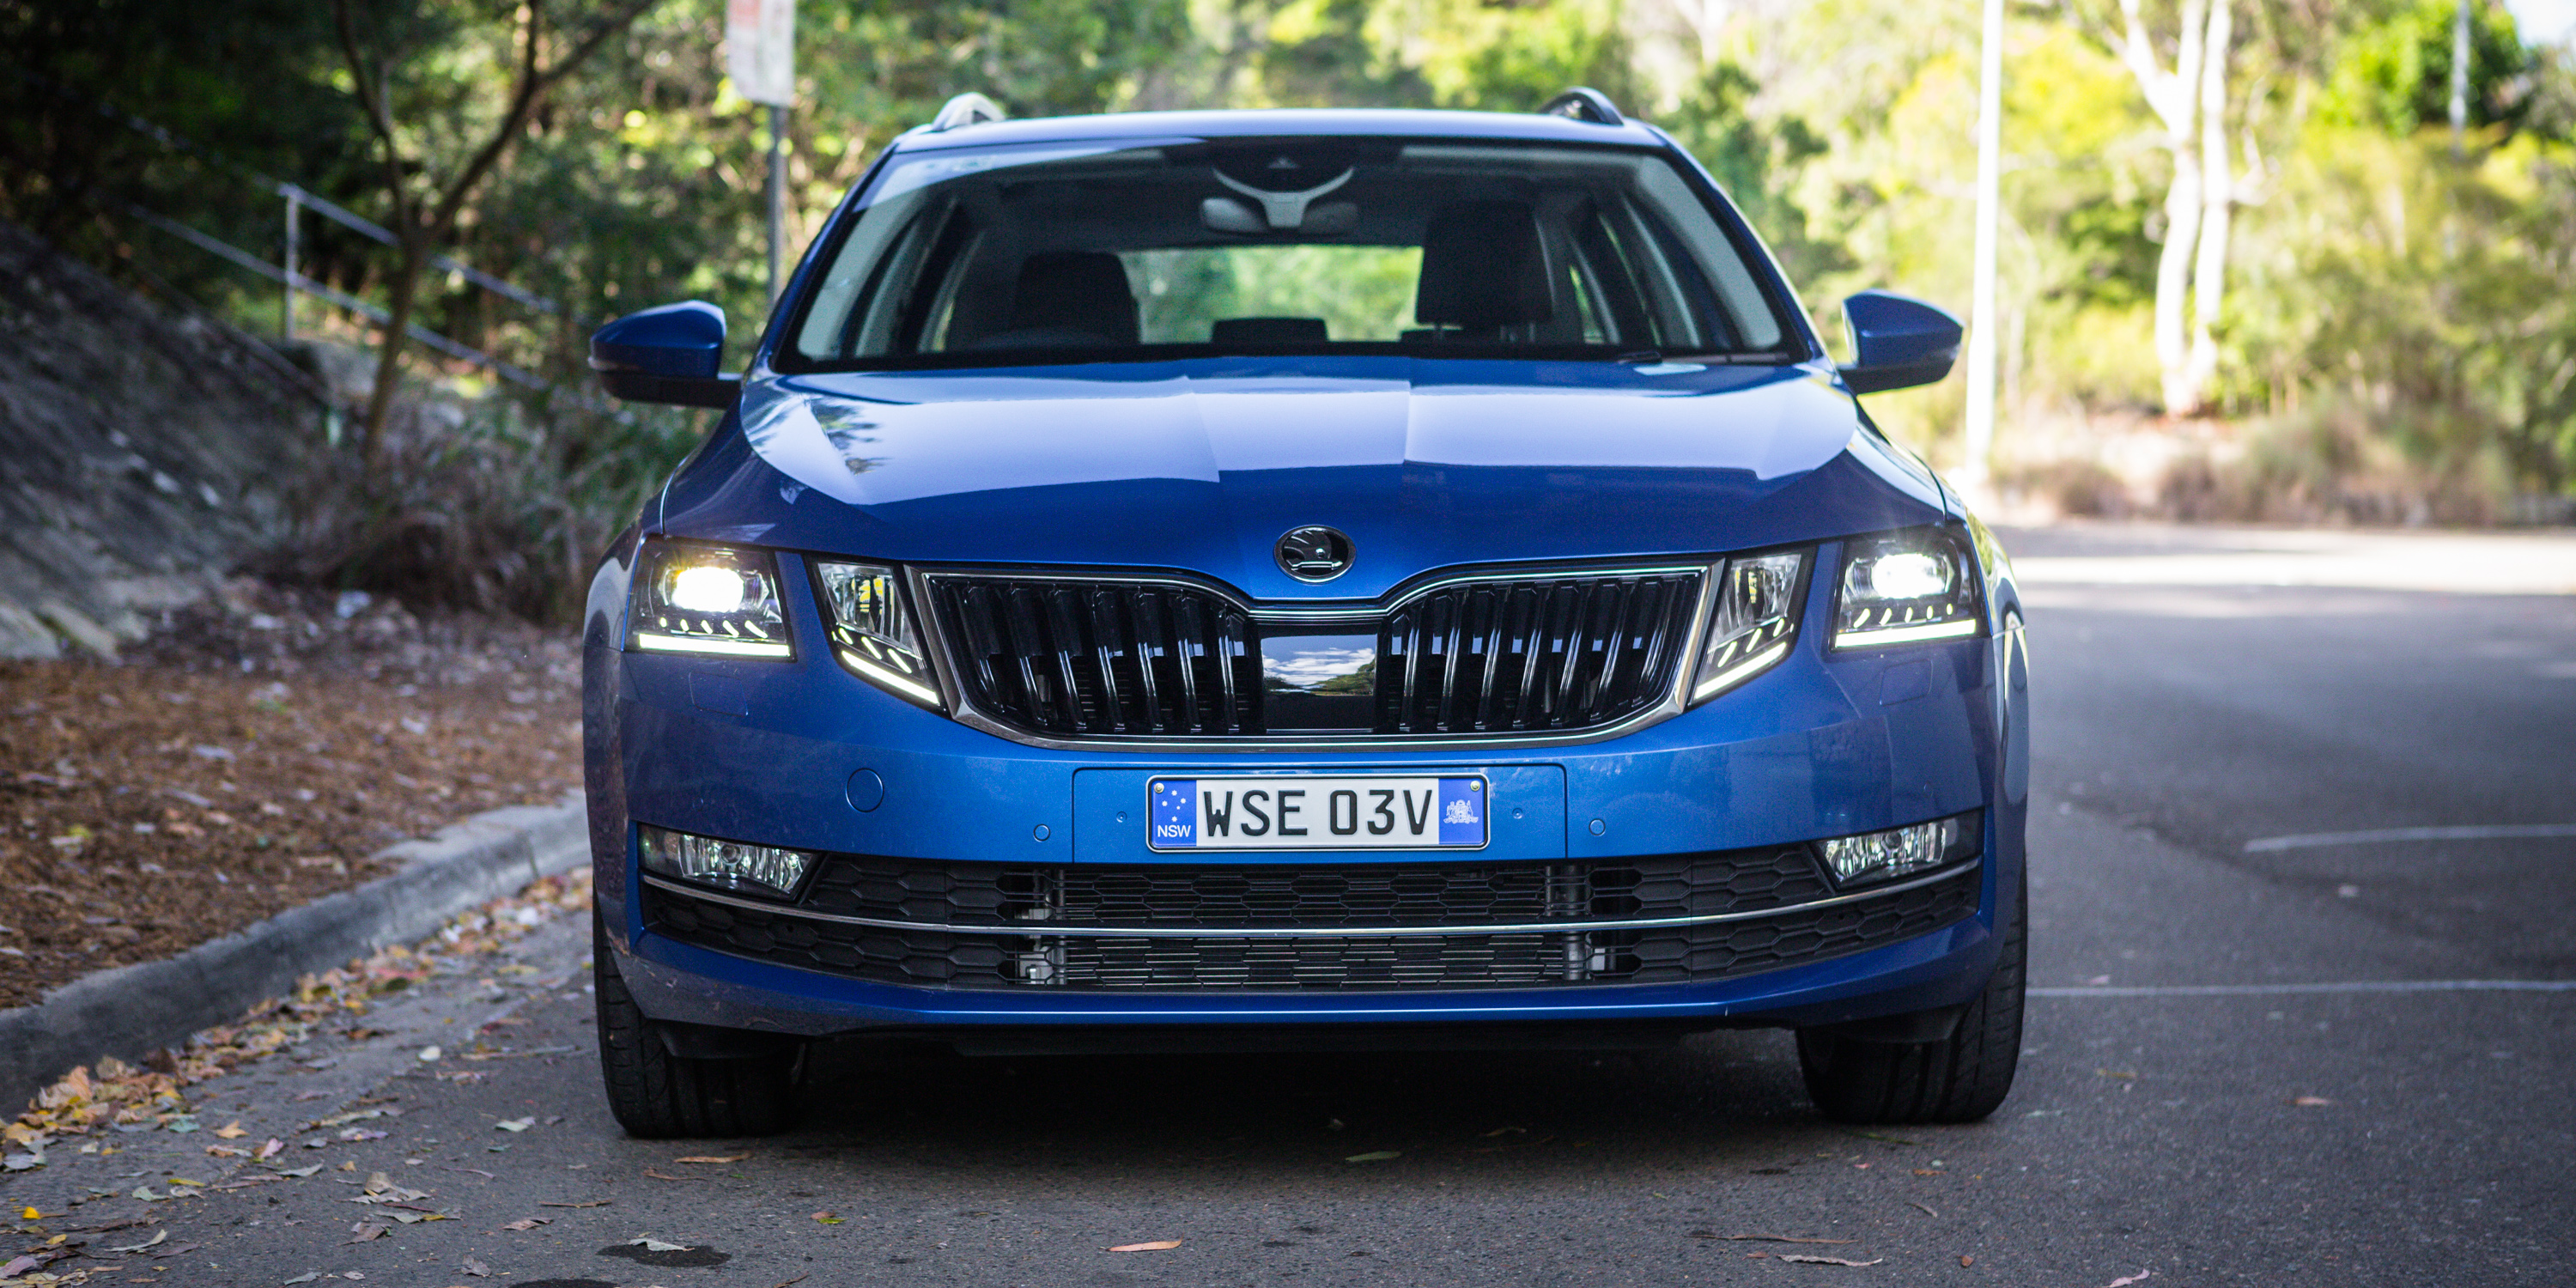 2018 Skoda Octavia review - photos | CarAdvice